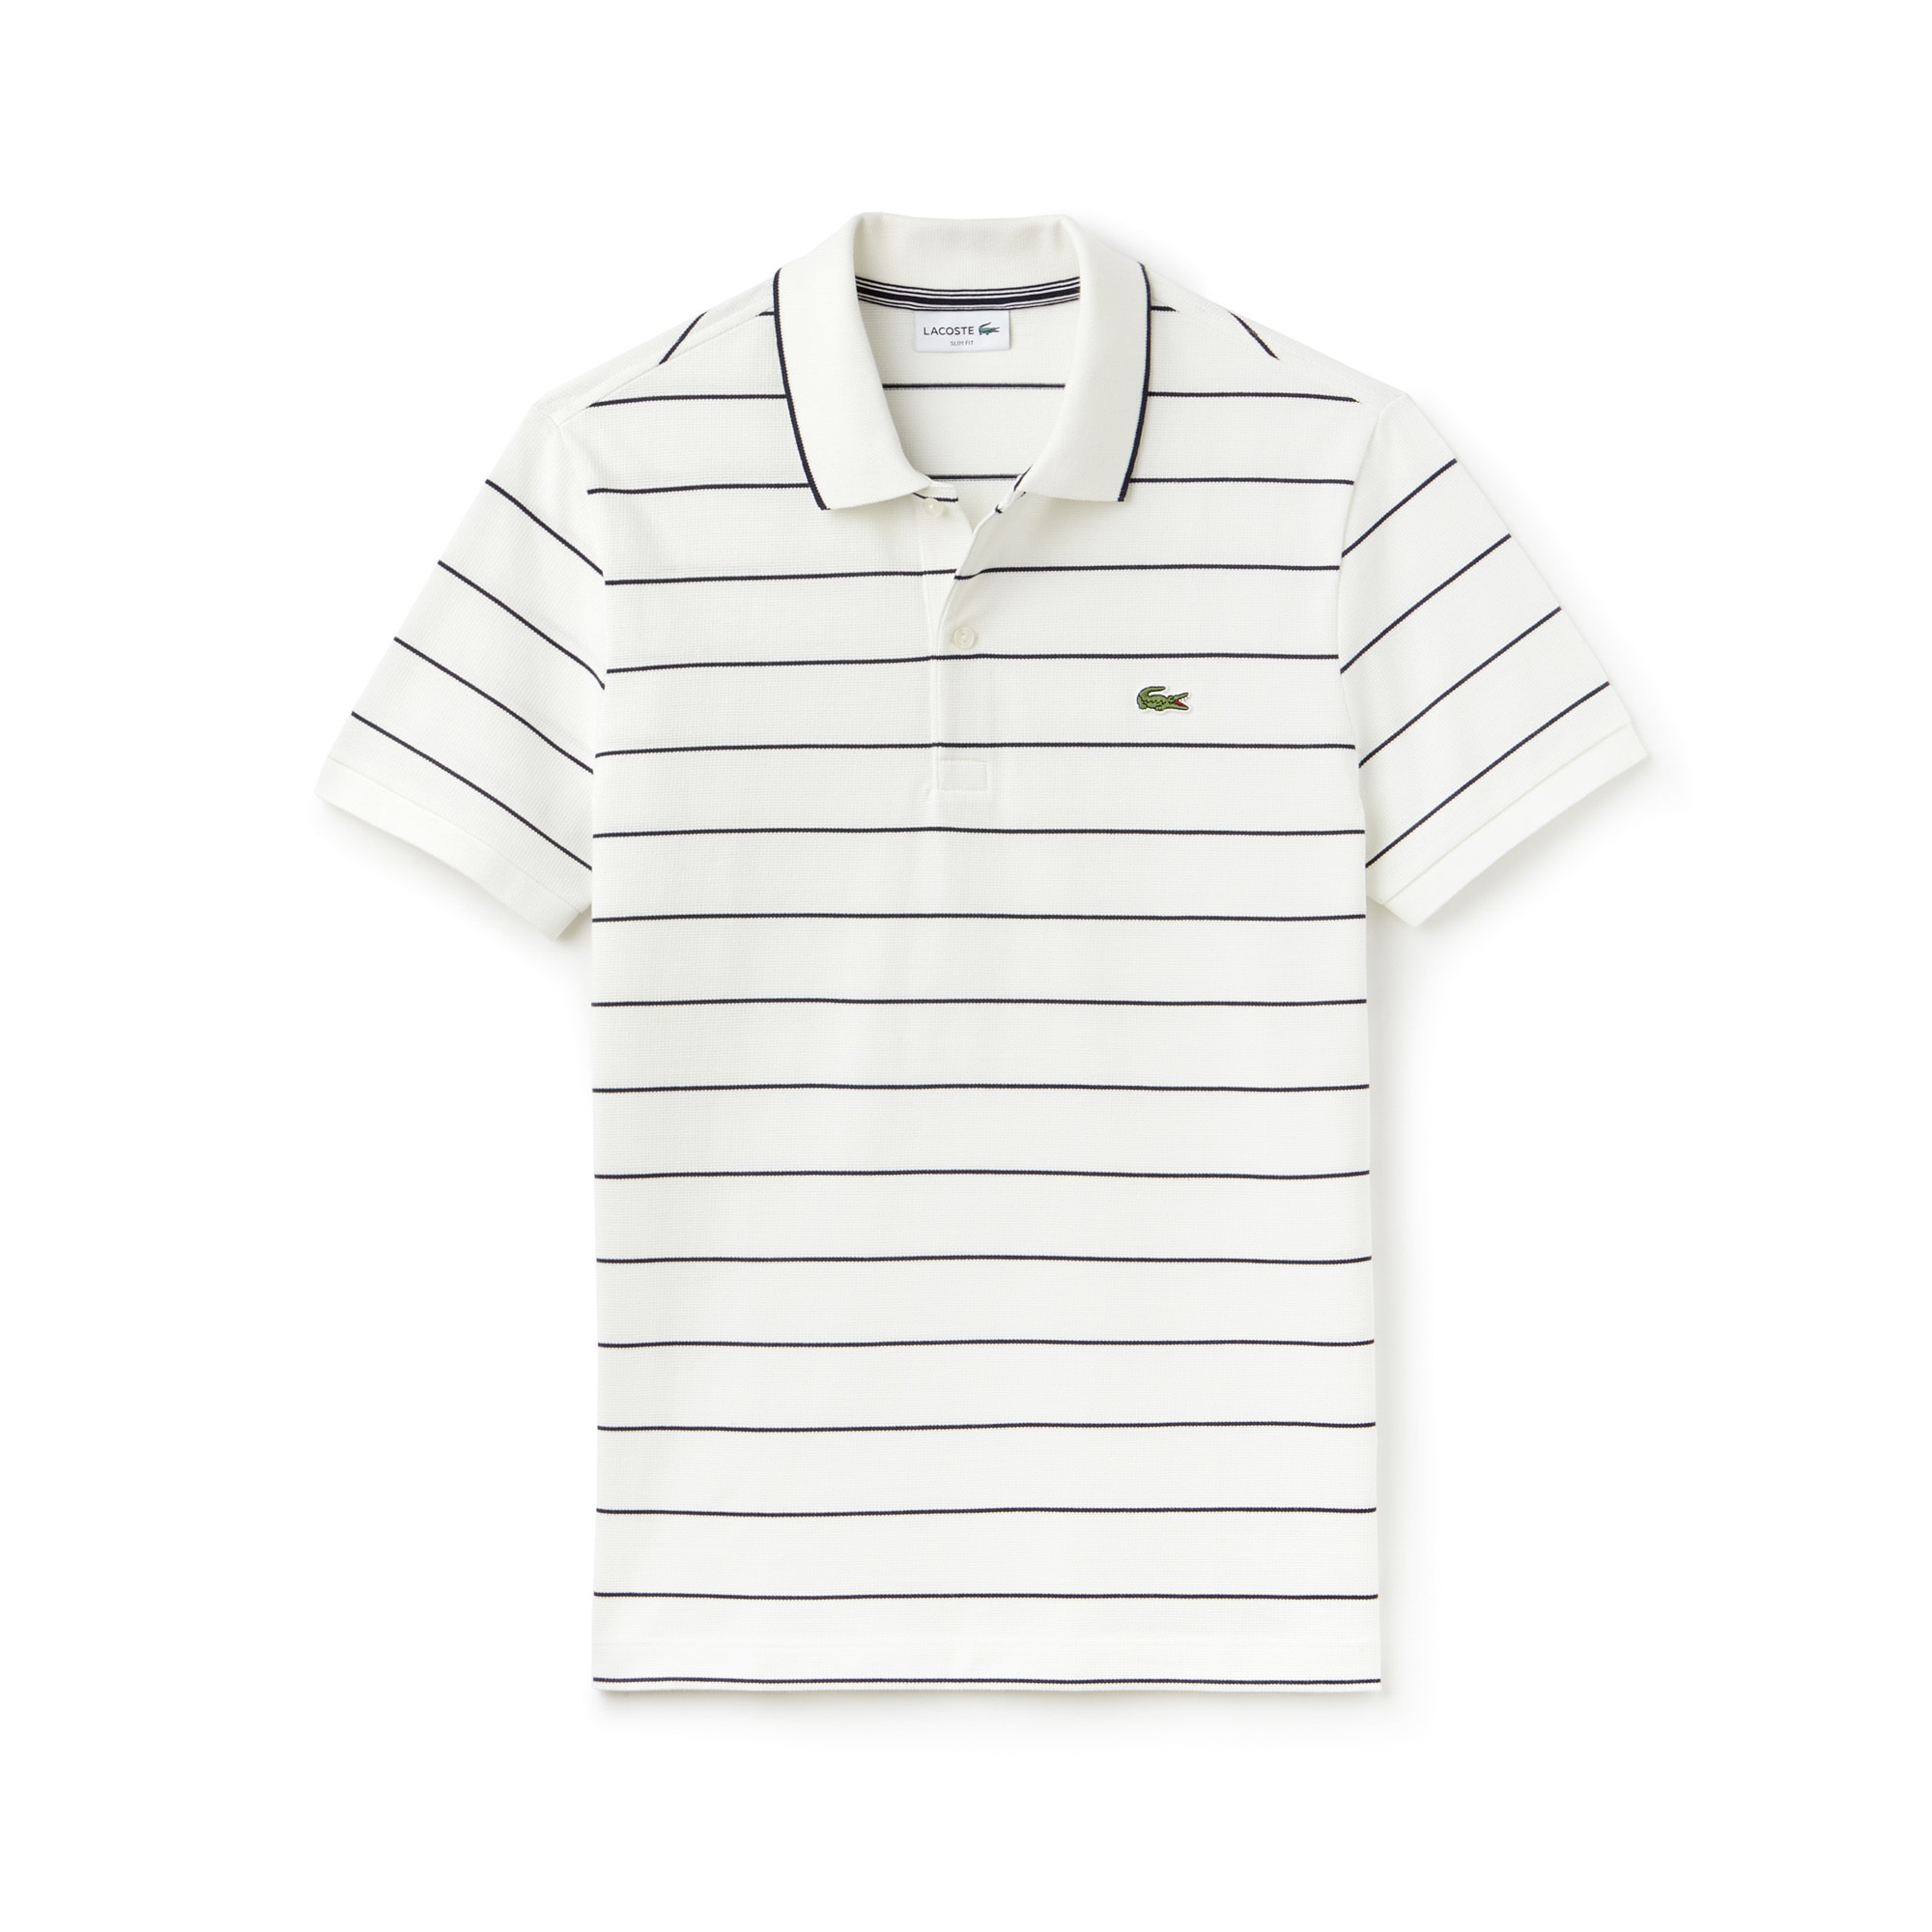 Men's Lacoste Slim Fit Piped Striped Square Knit And Jersey Polo Shirt